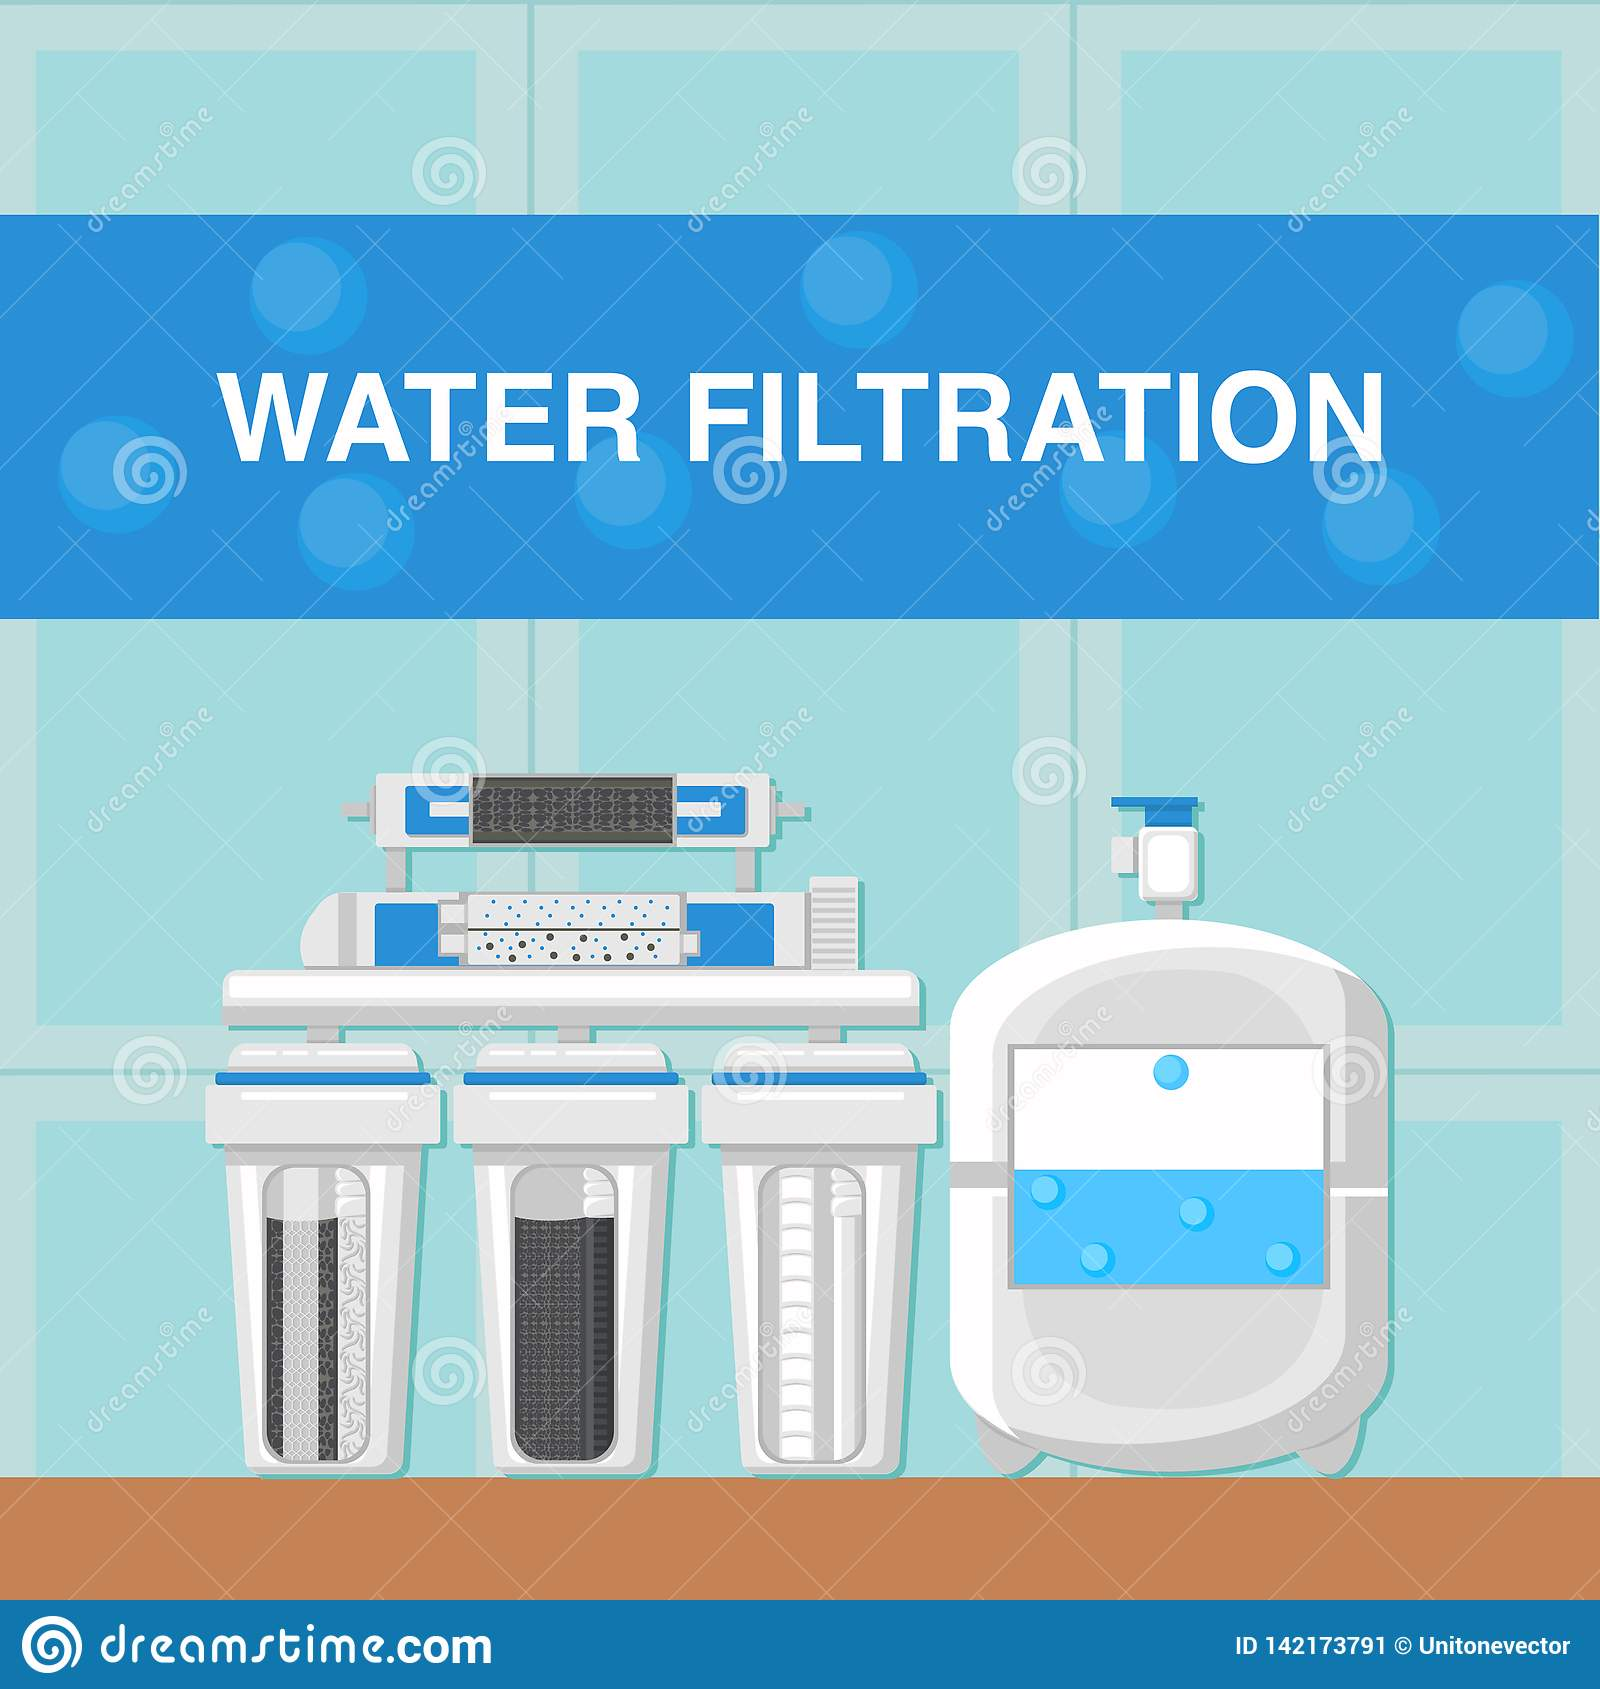 Water Filtration Poster Flat Template With Text Stock Vector